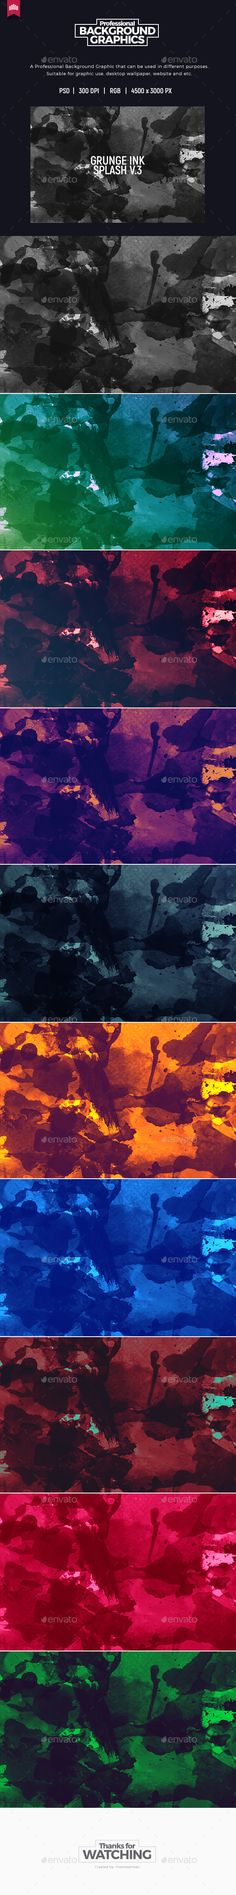 #Grunge Ink Splash - Background - Abstract #Backgrounds Download here: https://graphicriver.net/item/grunge-ink-splash-background/20112502?ref=alena994